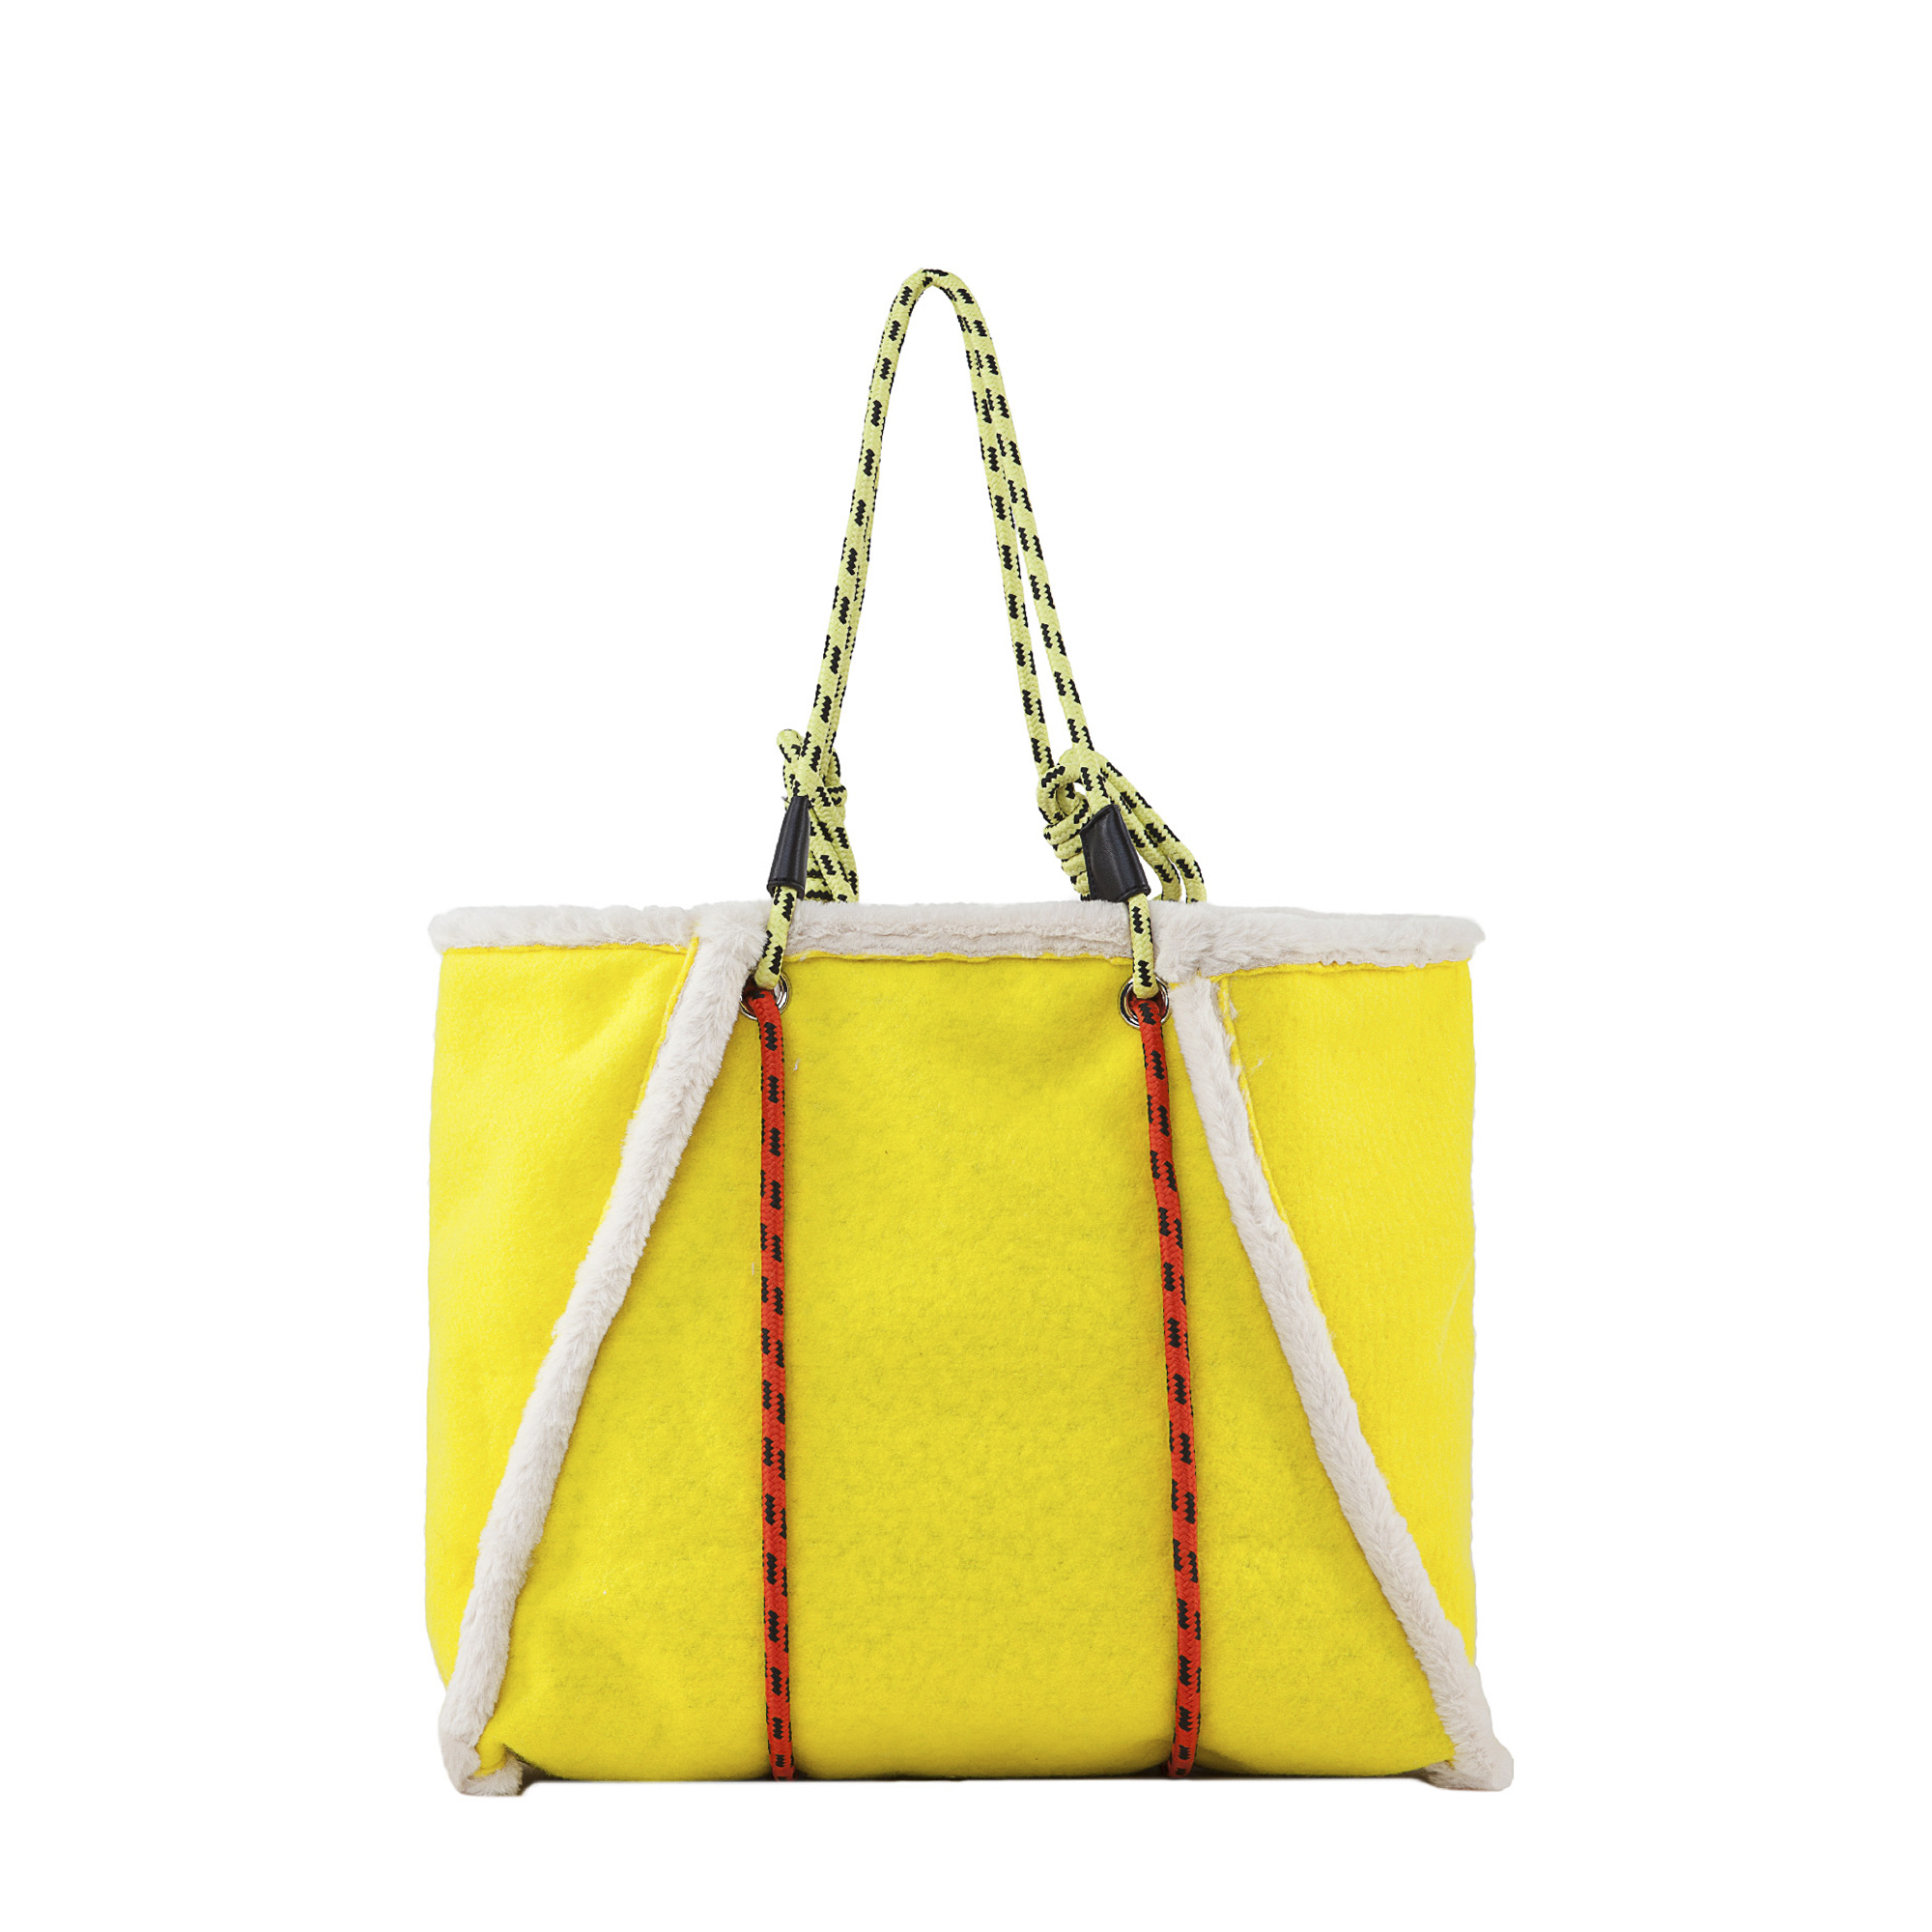 SHOPPER  - GBDA1250 - GAELLE PARIS